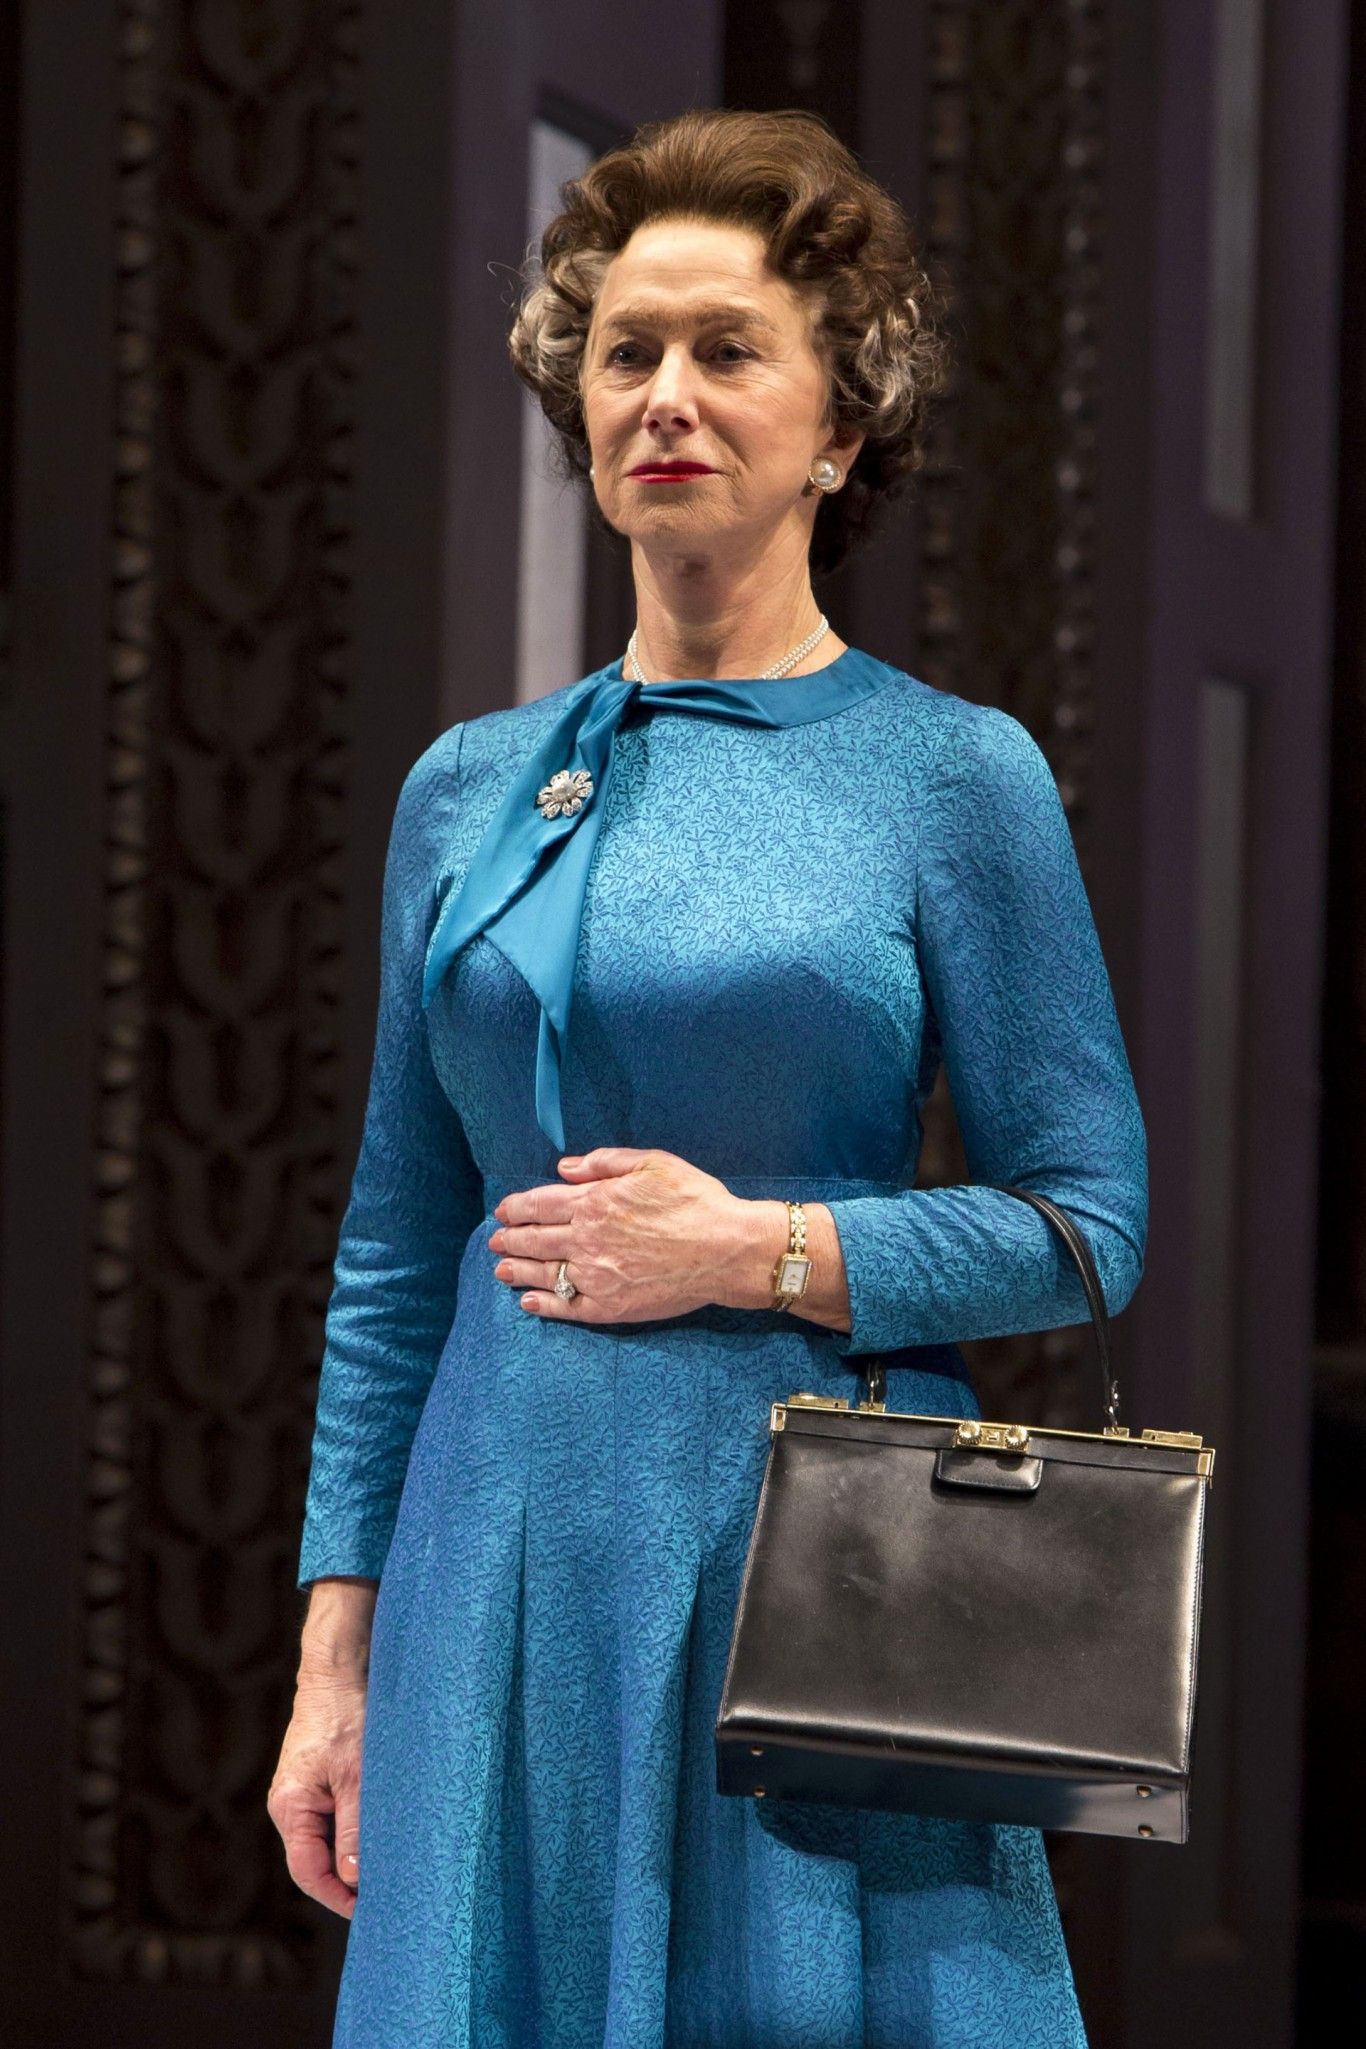 Helen Mirren appears on stage as The Queen at the Broadway opening night curtain call of The Audience in 2015